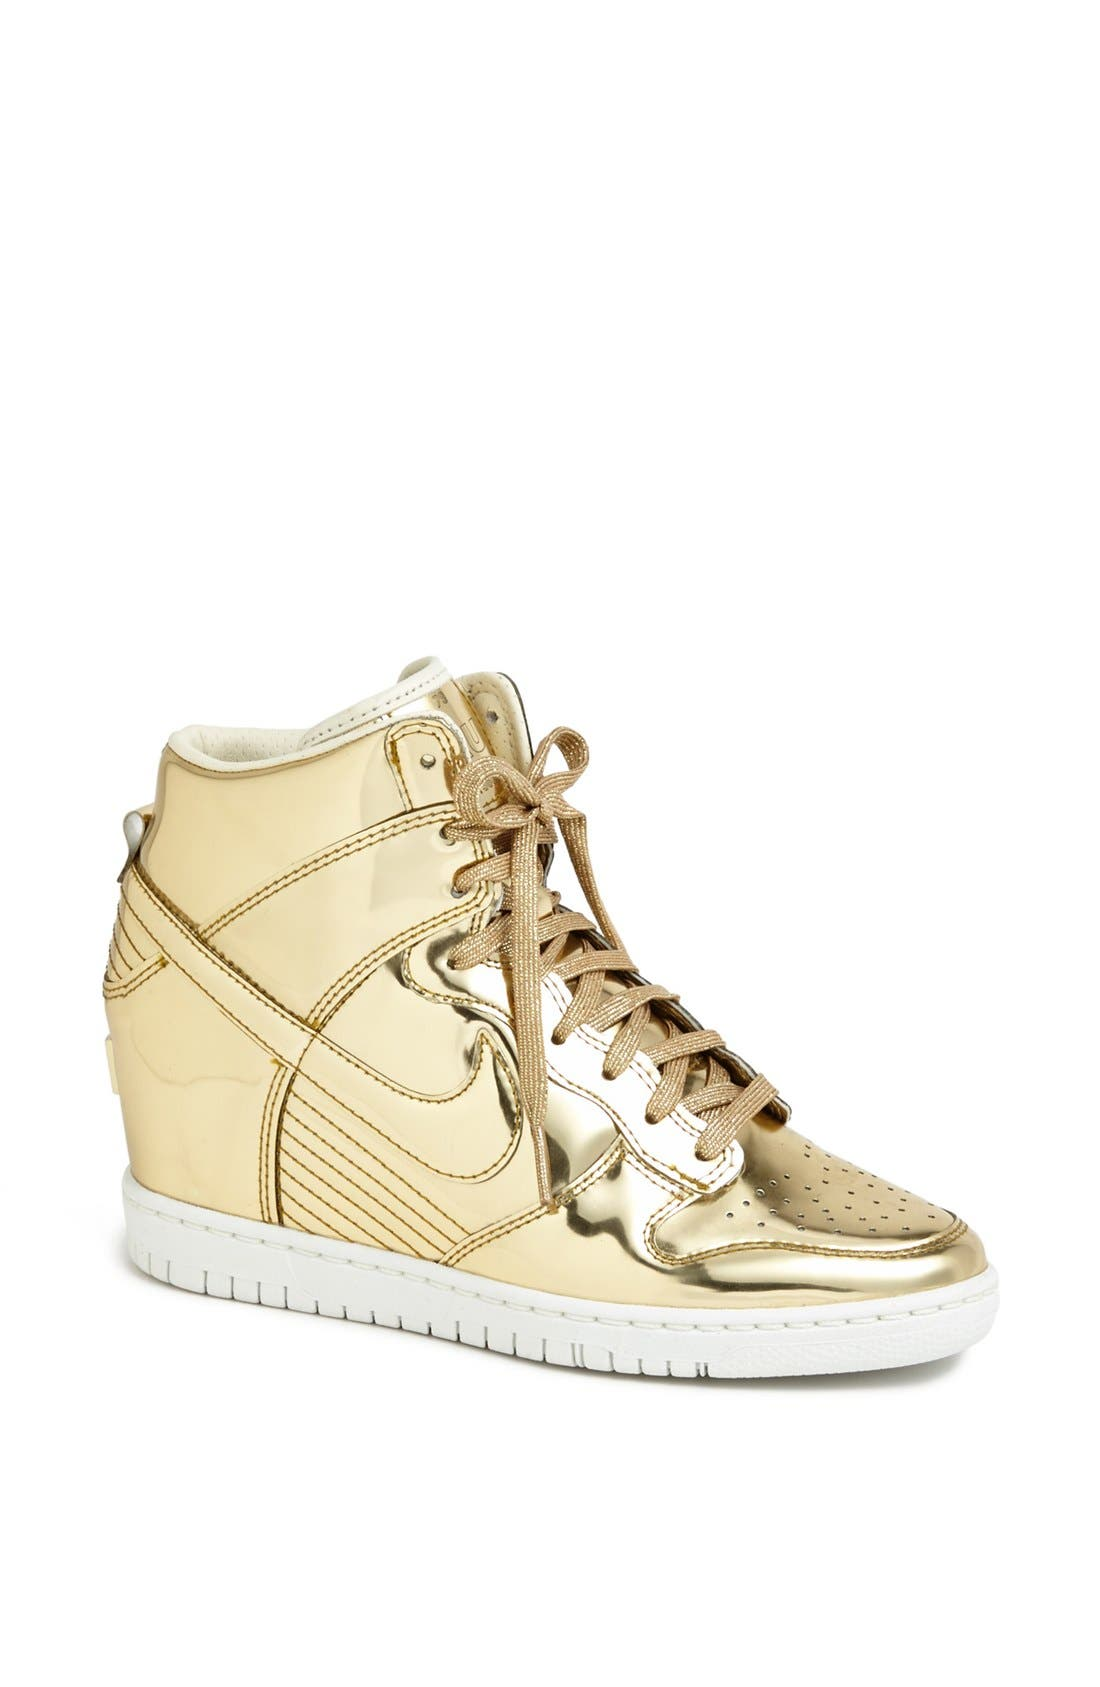 Alternate Image 1 Selected - Nike 'Dunk Sky Hi' Hidden Wedge Sneaker (Women)